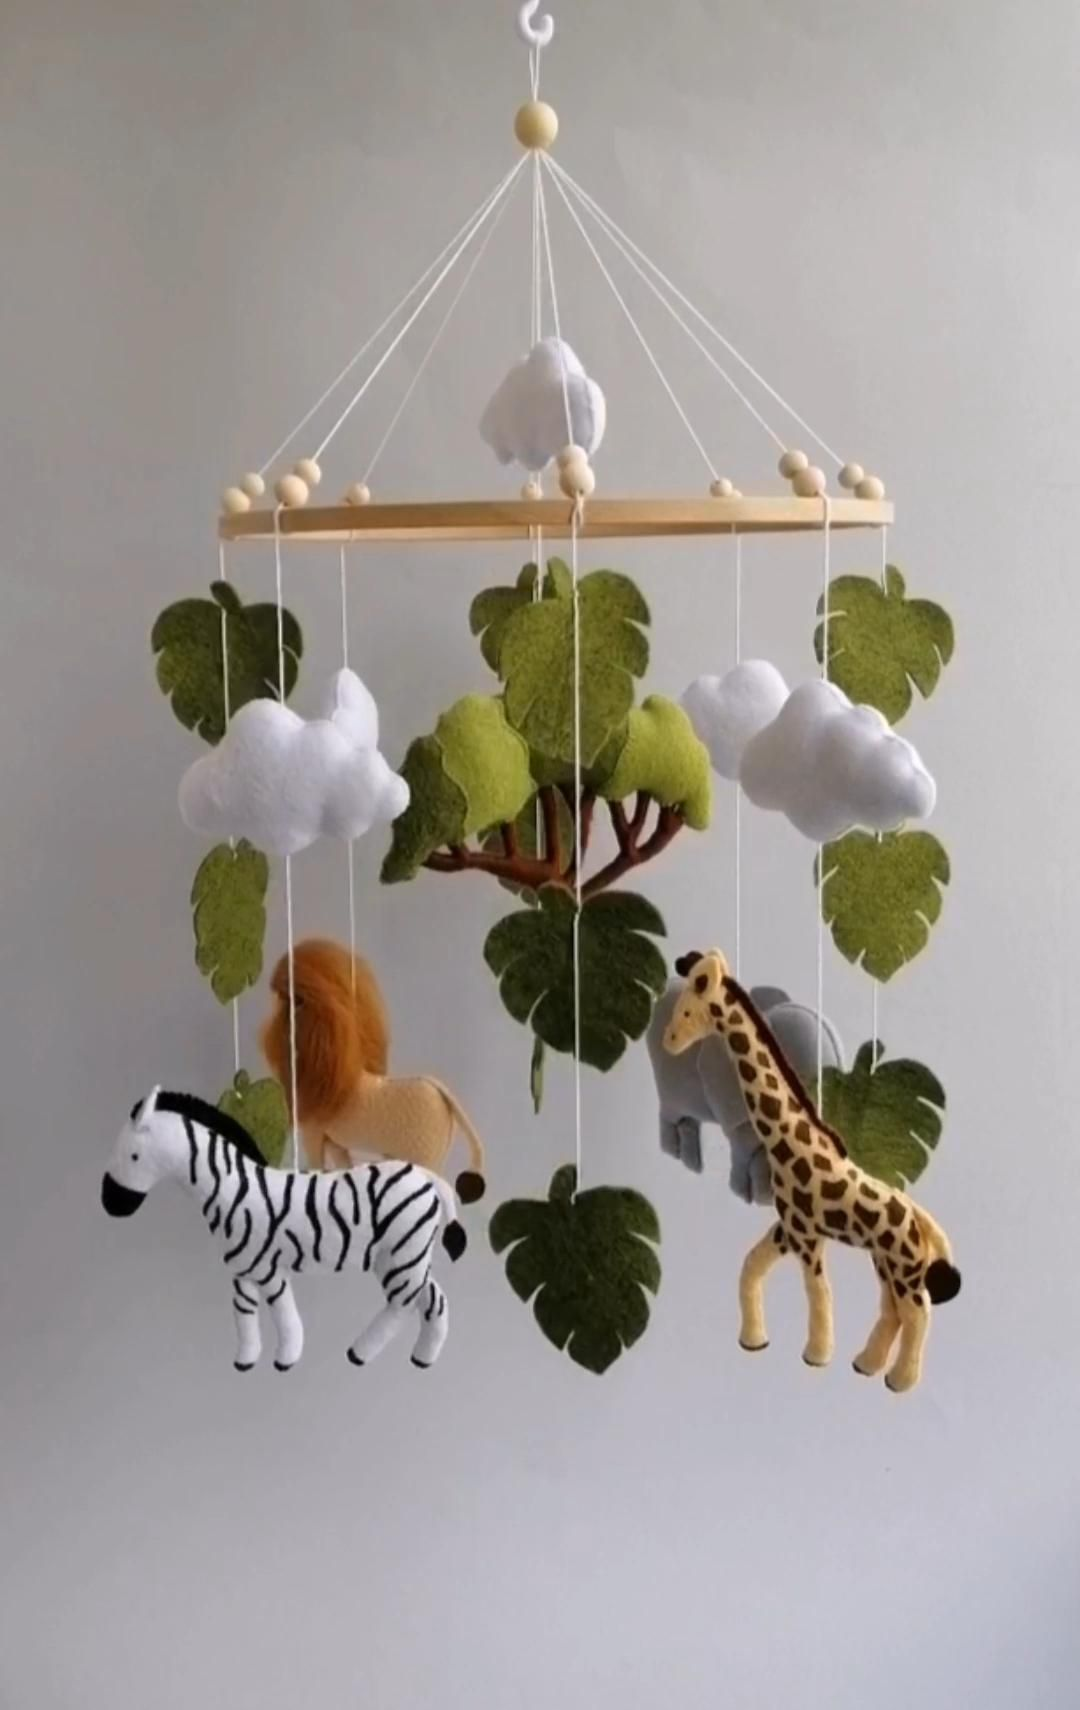 Safari animals mobile will perfectly match with baby girl, baby boy or gender neutral nursery.  Baby mobile is also a perfect gift for new baby or baby shower. _________________________________  African animals baby mobile includes:  1 lion  1 zebra  1 giraffe  1 elephant  1 African tree  5 clouds  Leaves  Height of main toys is about 5.9